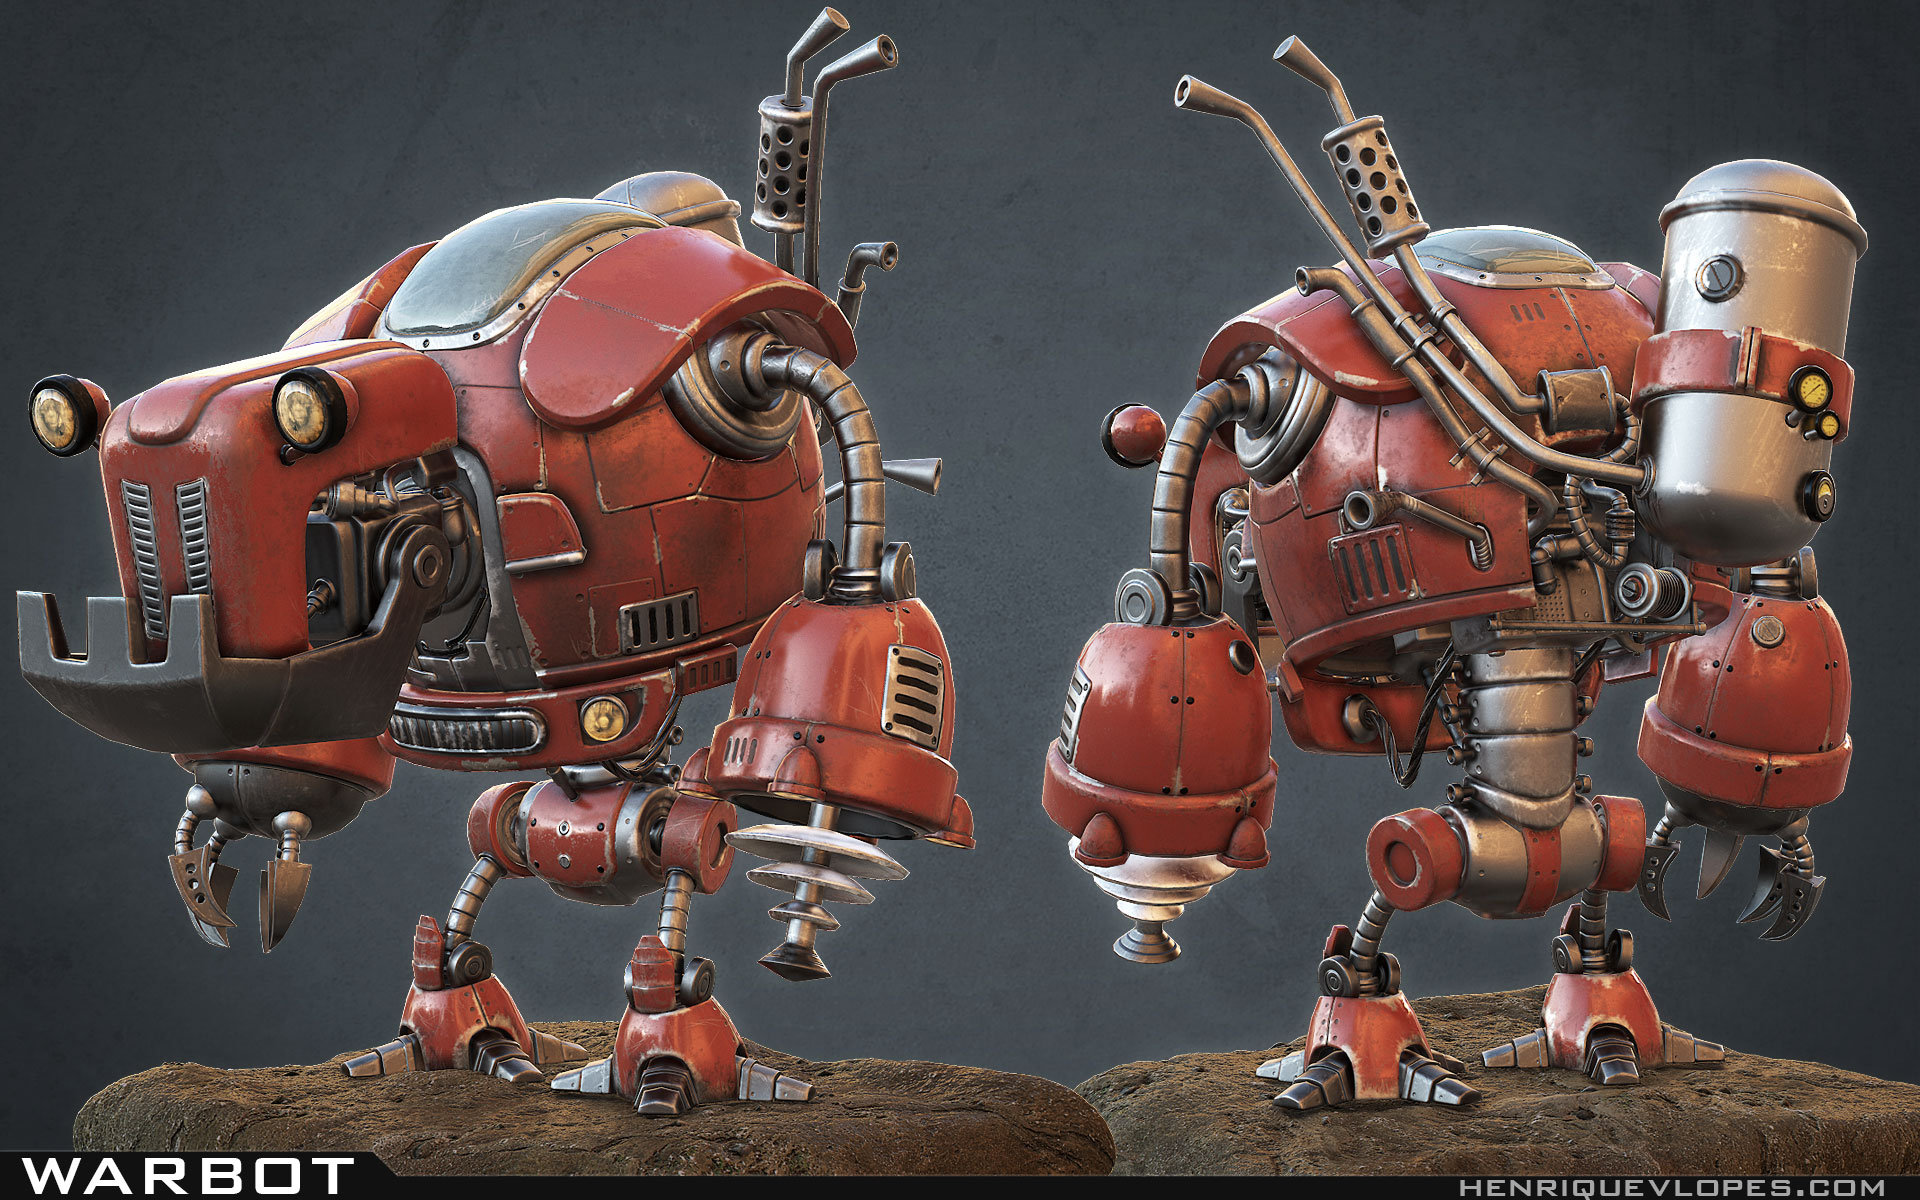 Henrique lopes warbot final 01